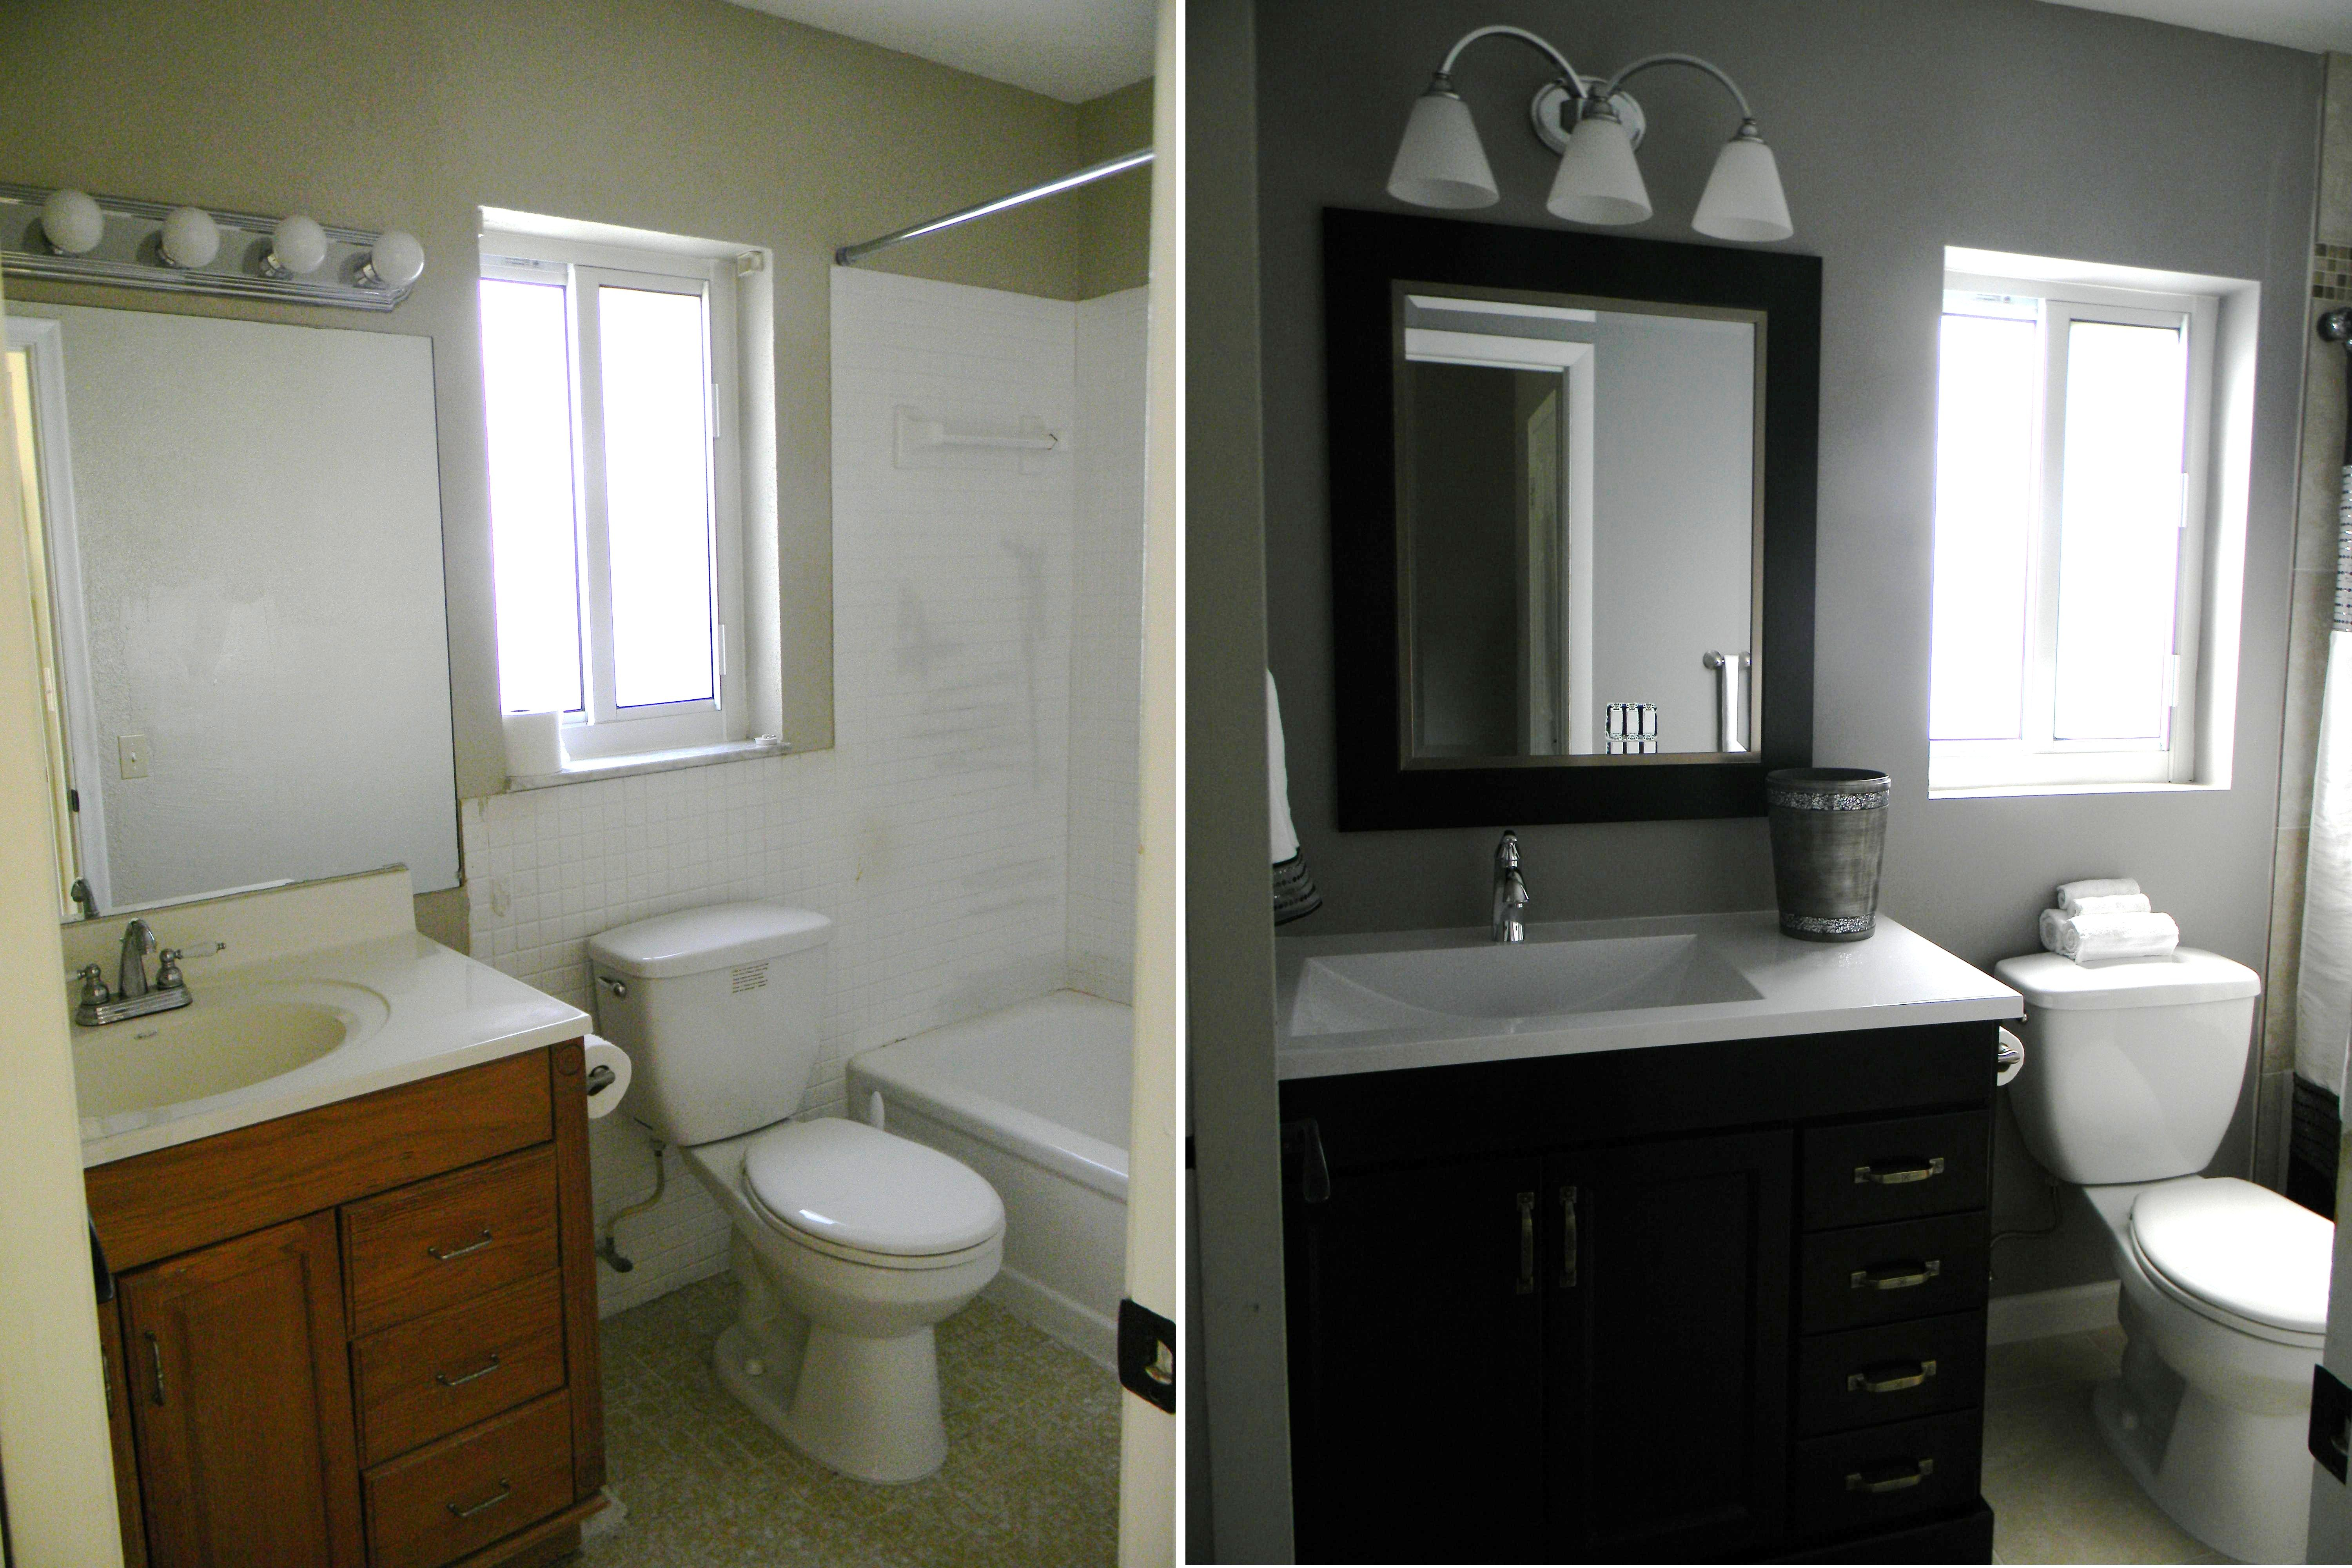 My Small Bathroom Renovation Under Budget And Ahead Of Schedule Cheap Bathroom Remodel Simple Bathroom Remodel Inexpensive Bathroom Remodel